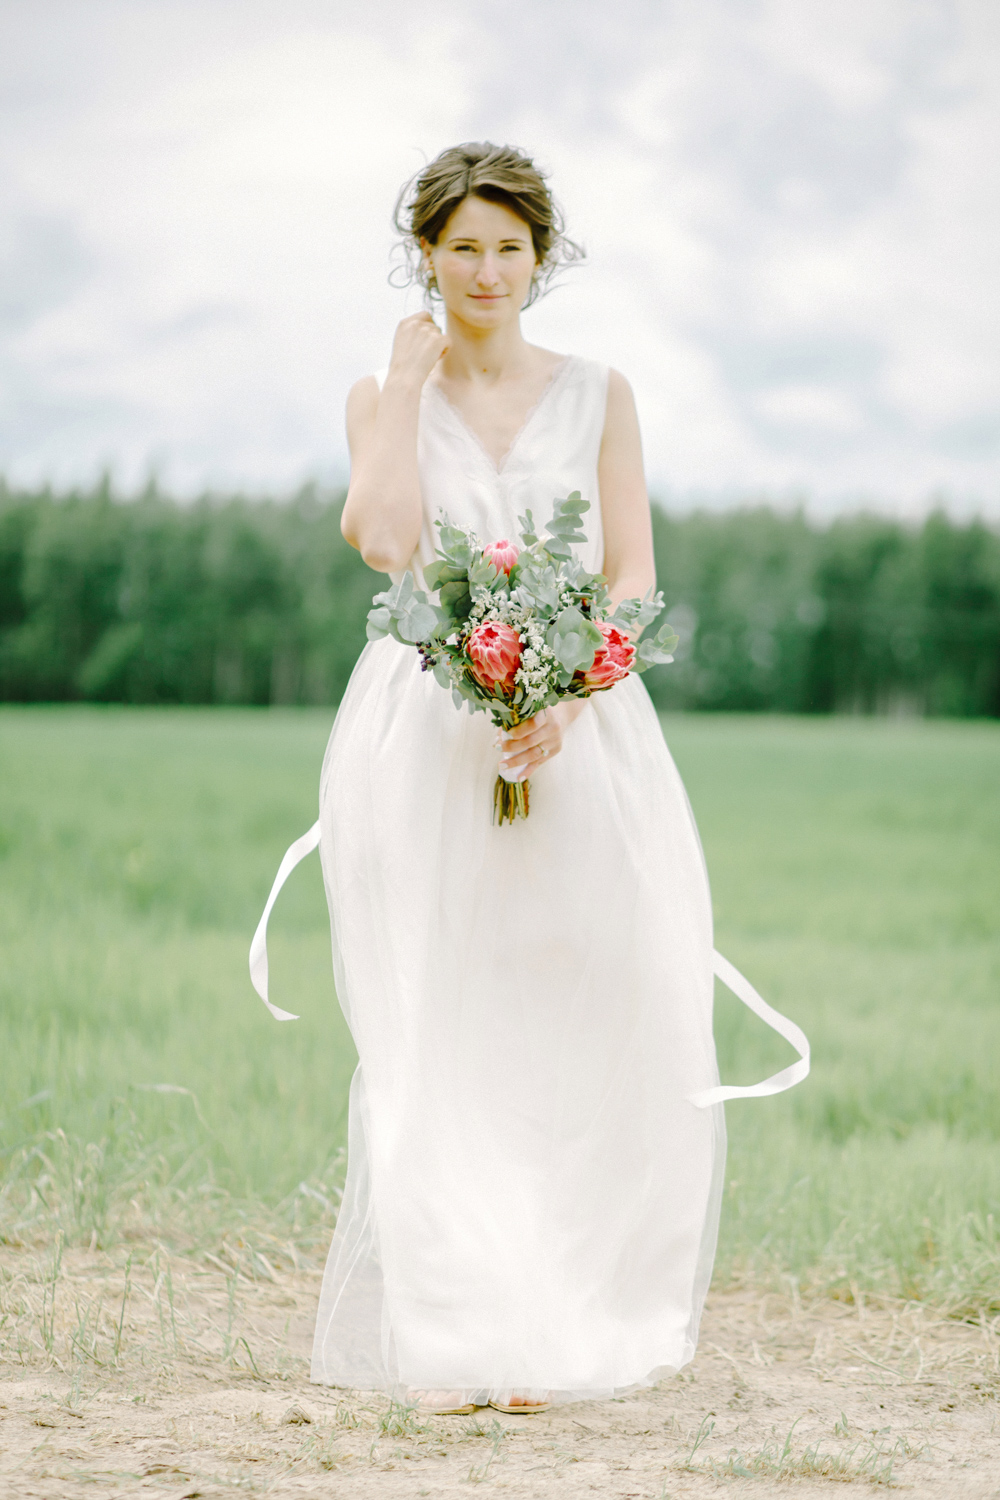 polinastudio.ru_wedding_ar-17